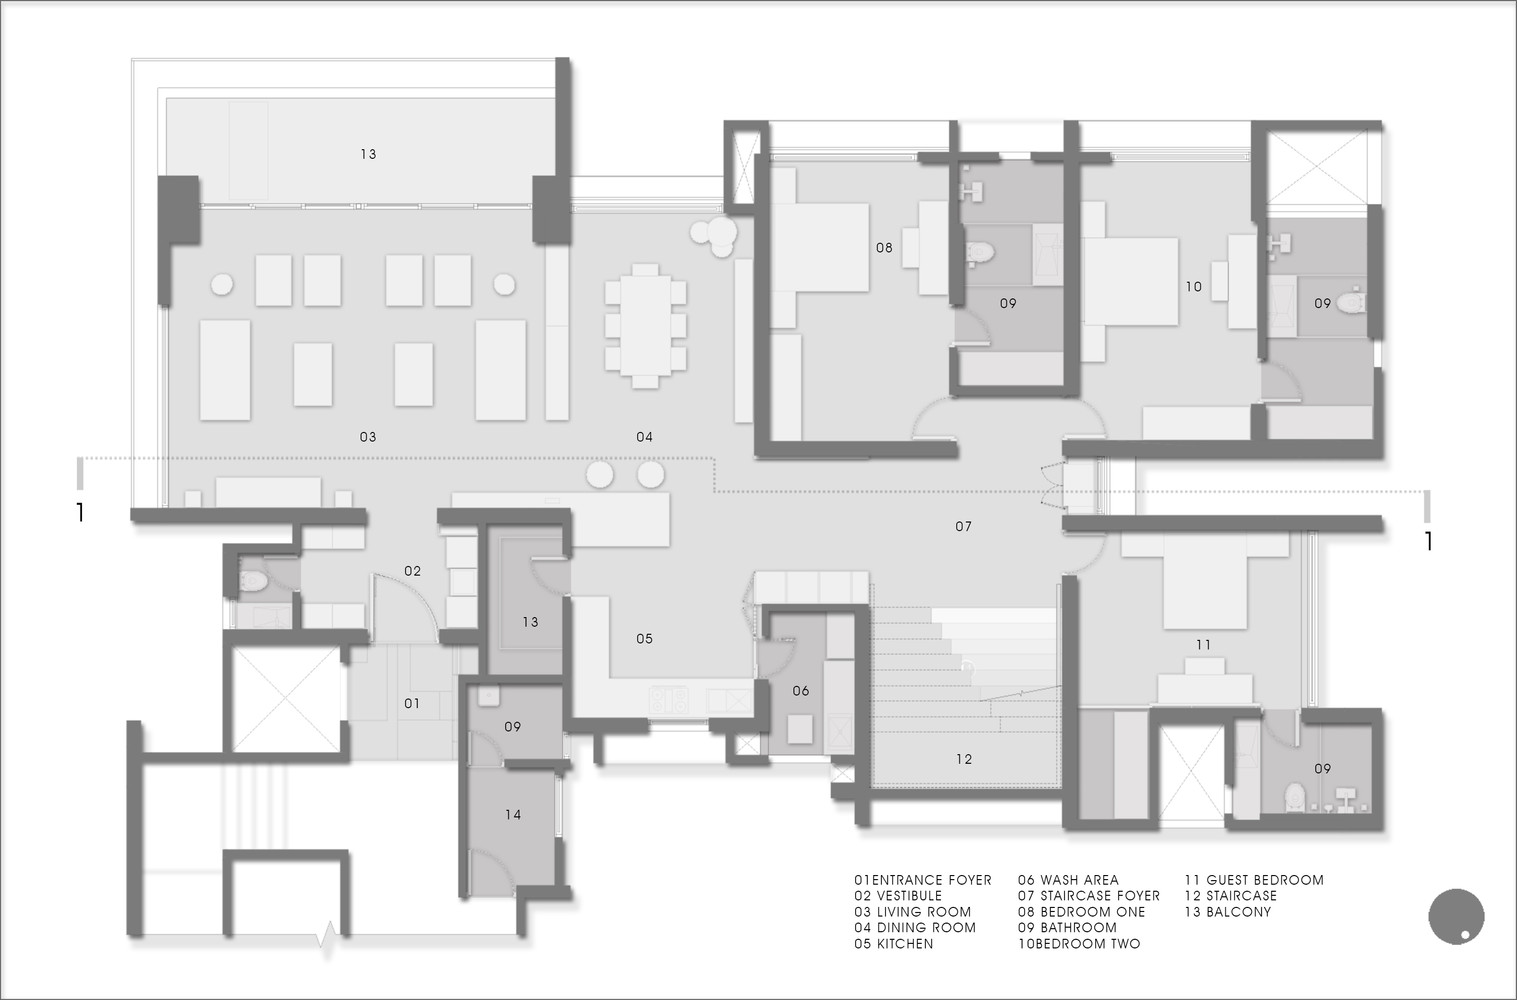 floor plan furniture layout. 1102 Penthouse,11th Floor Plan Furniture Layout L